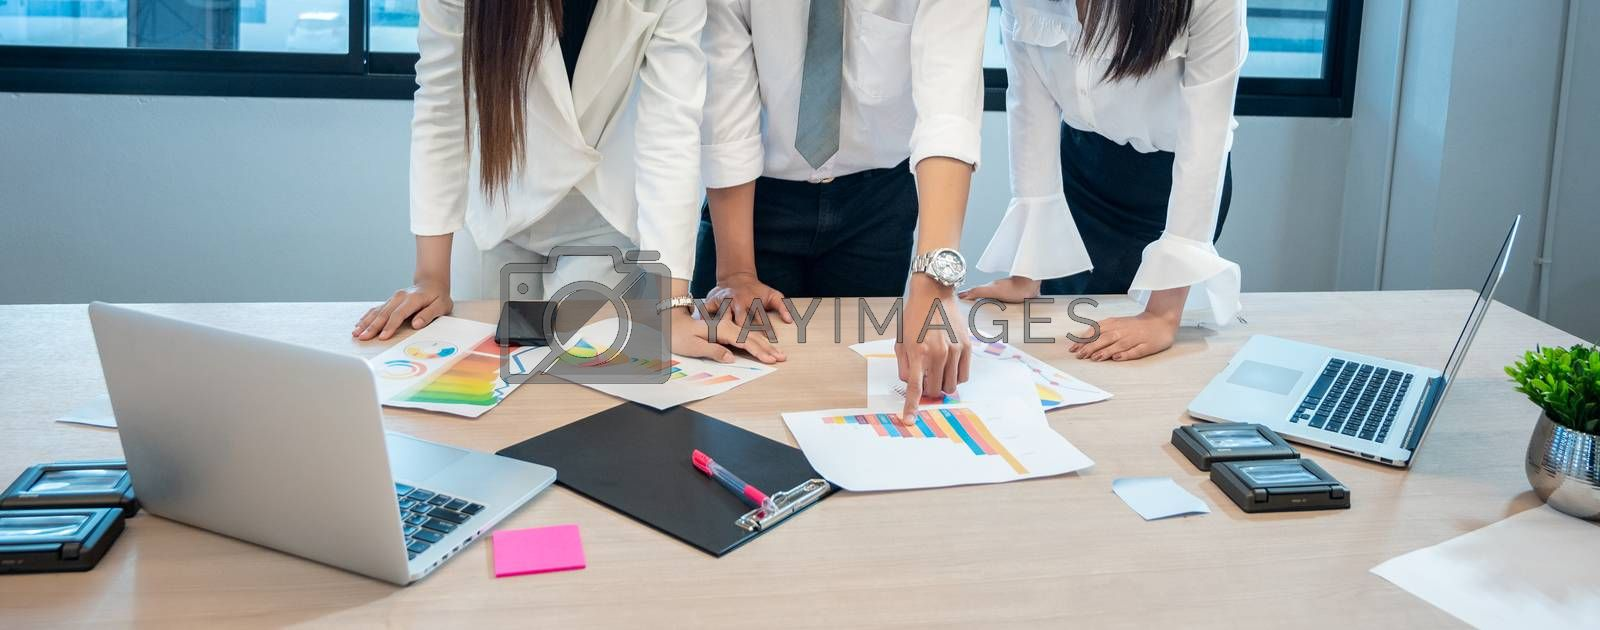 Business people are meeting and graphing business growth on a desk